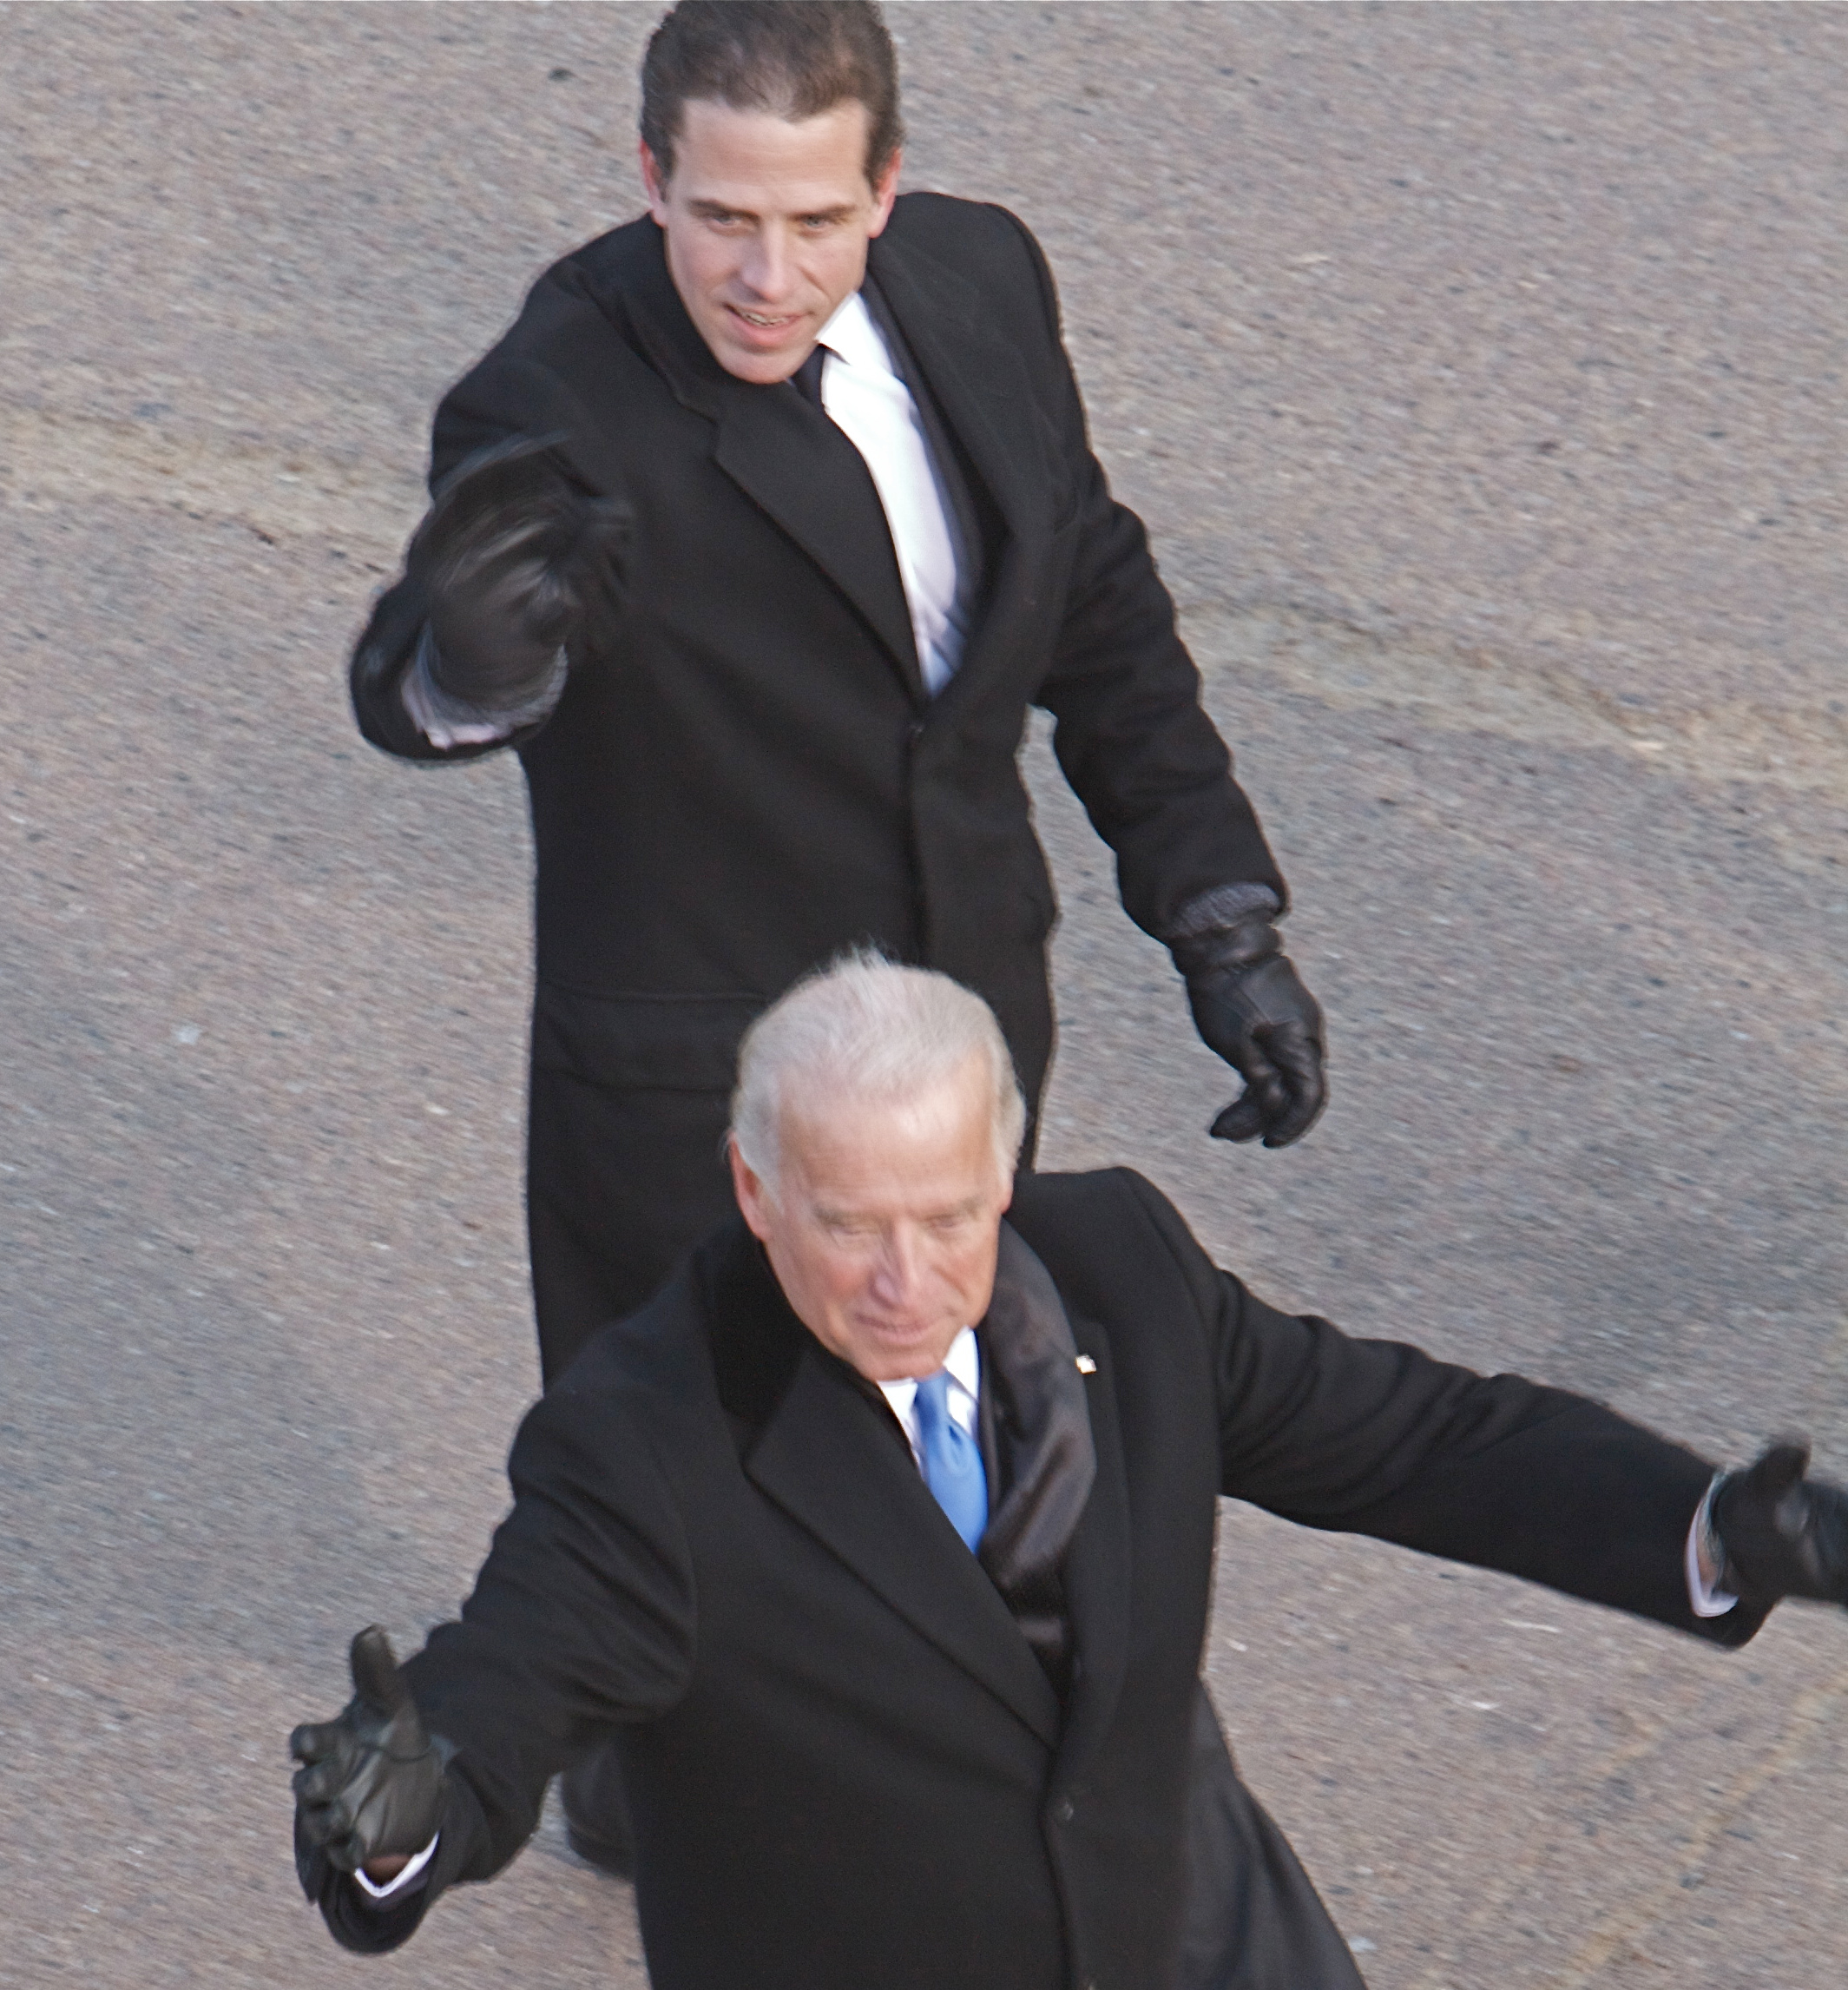 Hunter Biden S Ukraine Gig Was Corrupt Just Not In The Way Republican Conspiracists Claim It Was Boing Boing